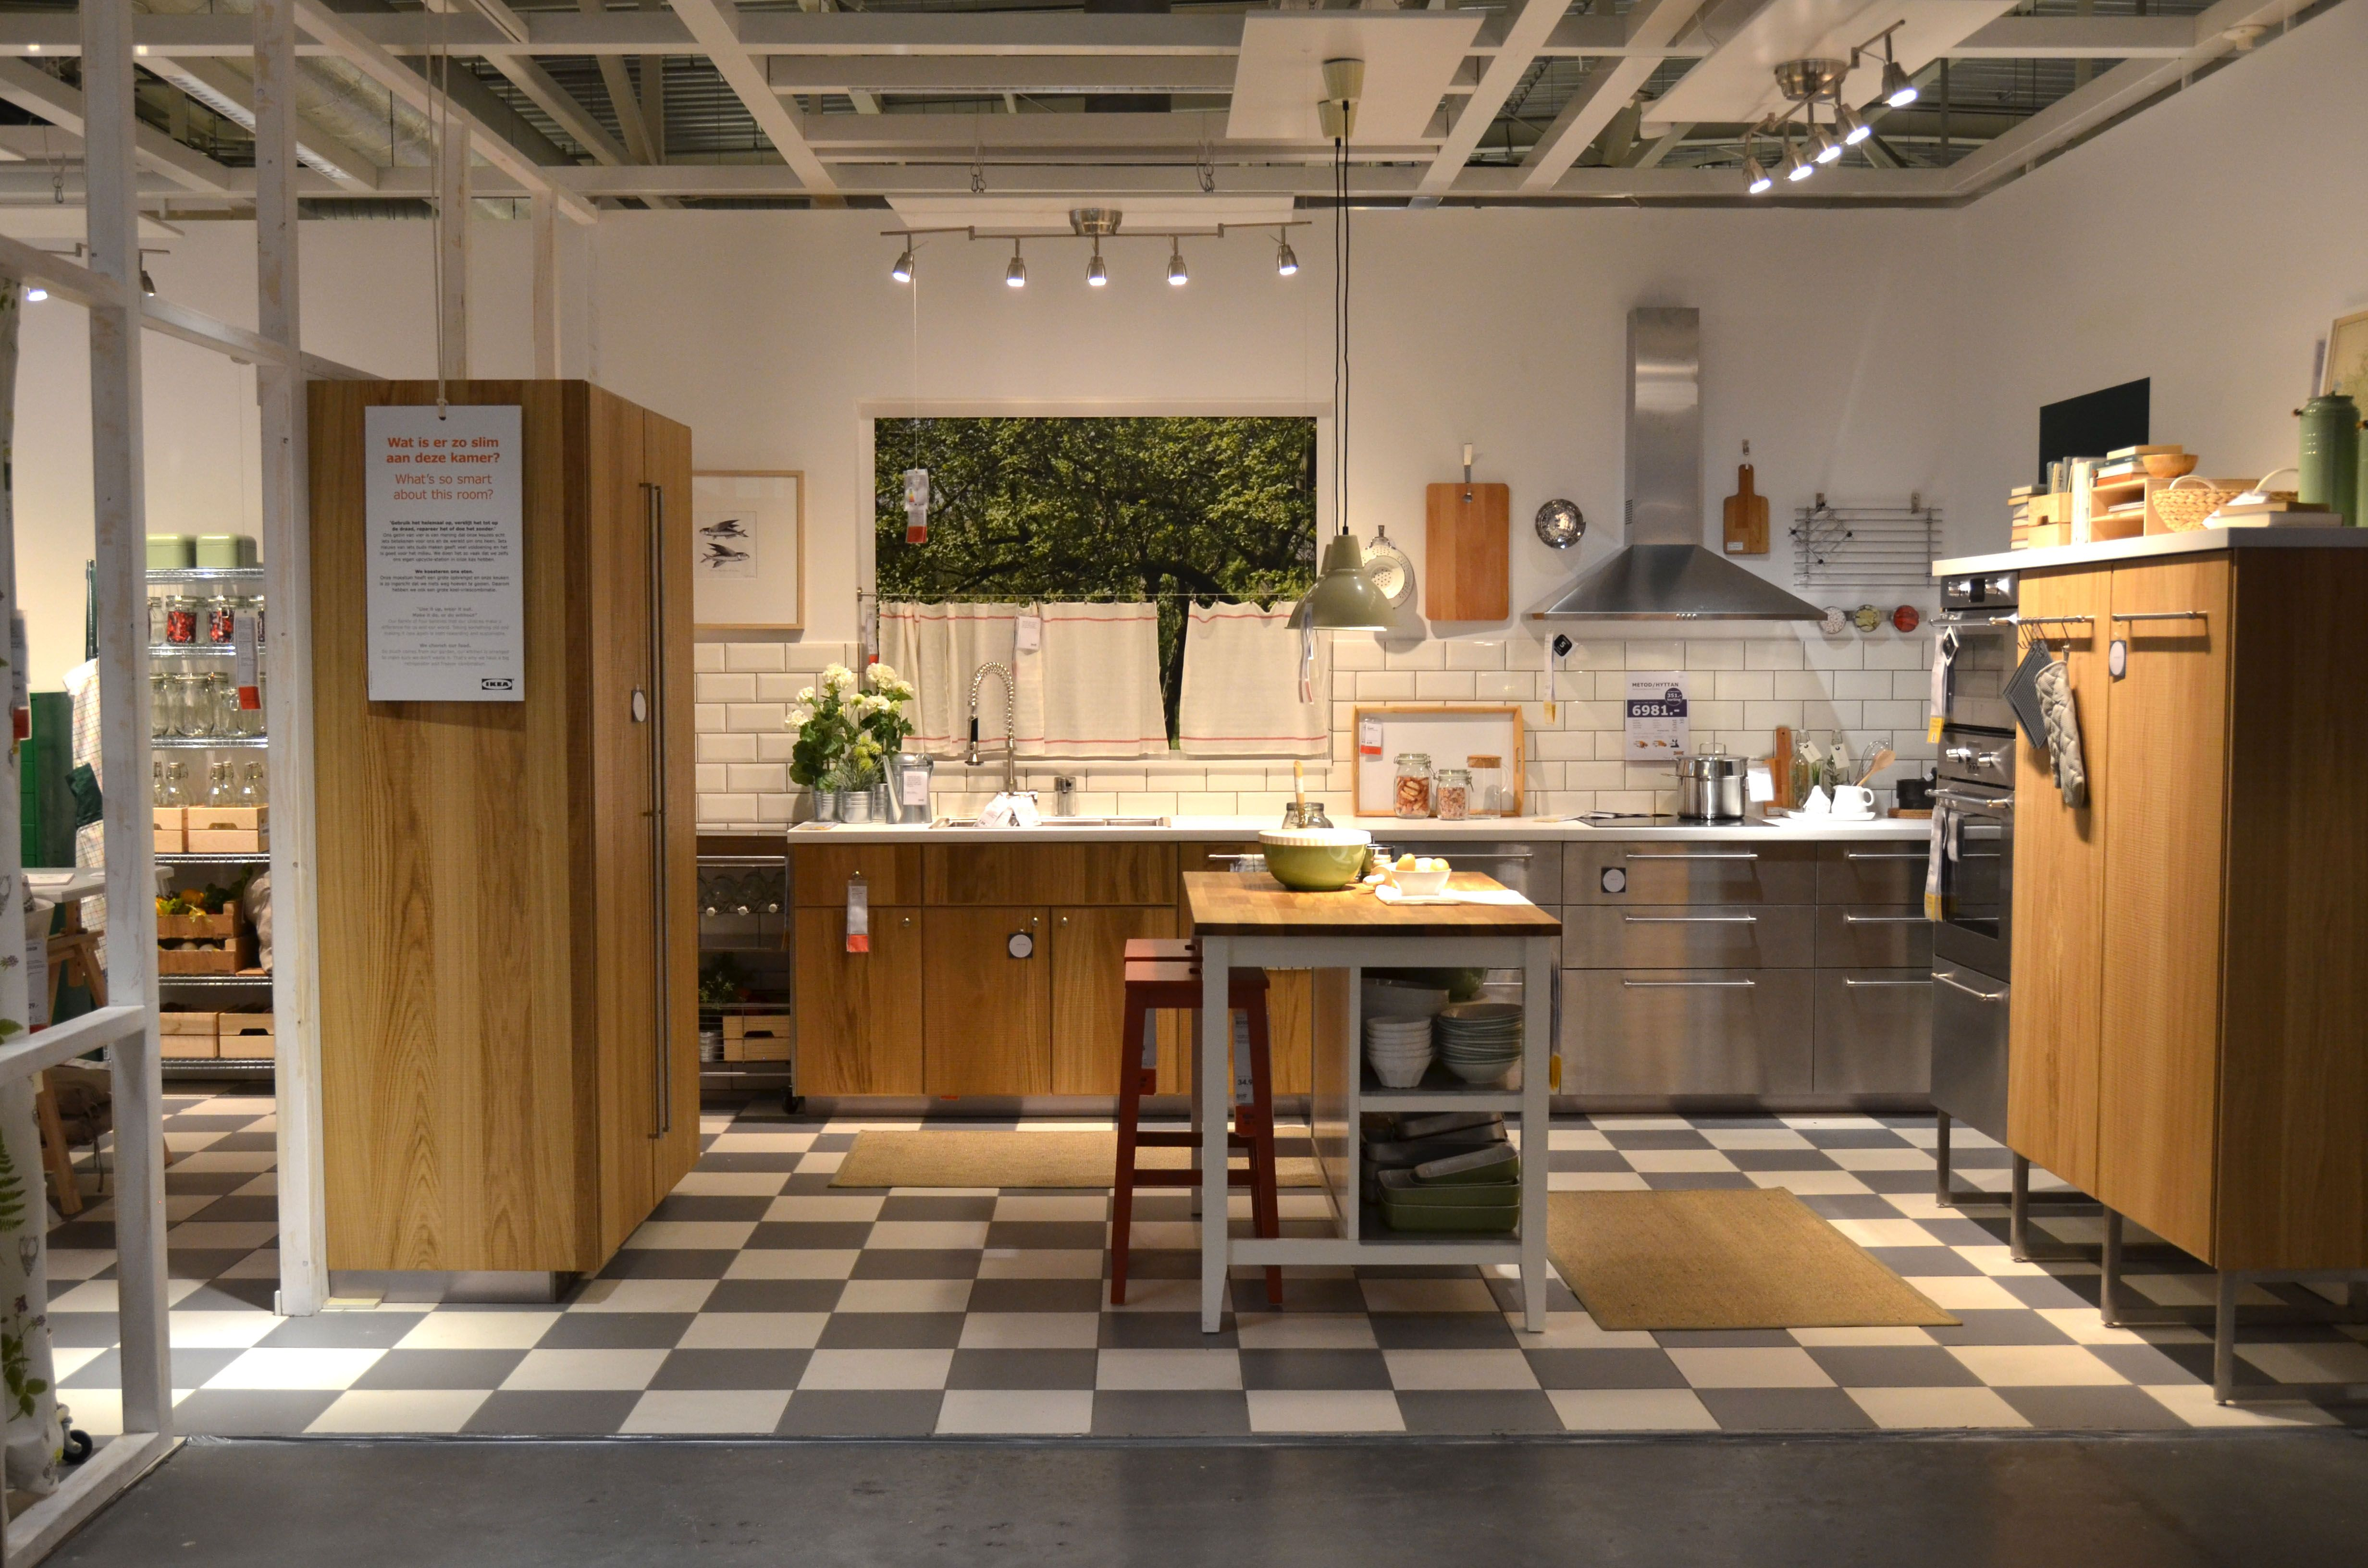 ikea delft sustainable kitchen metod hyttan grevsta kitchen hfb 7. Black Bedroom Furniture Sets. Home Design Ideas